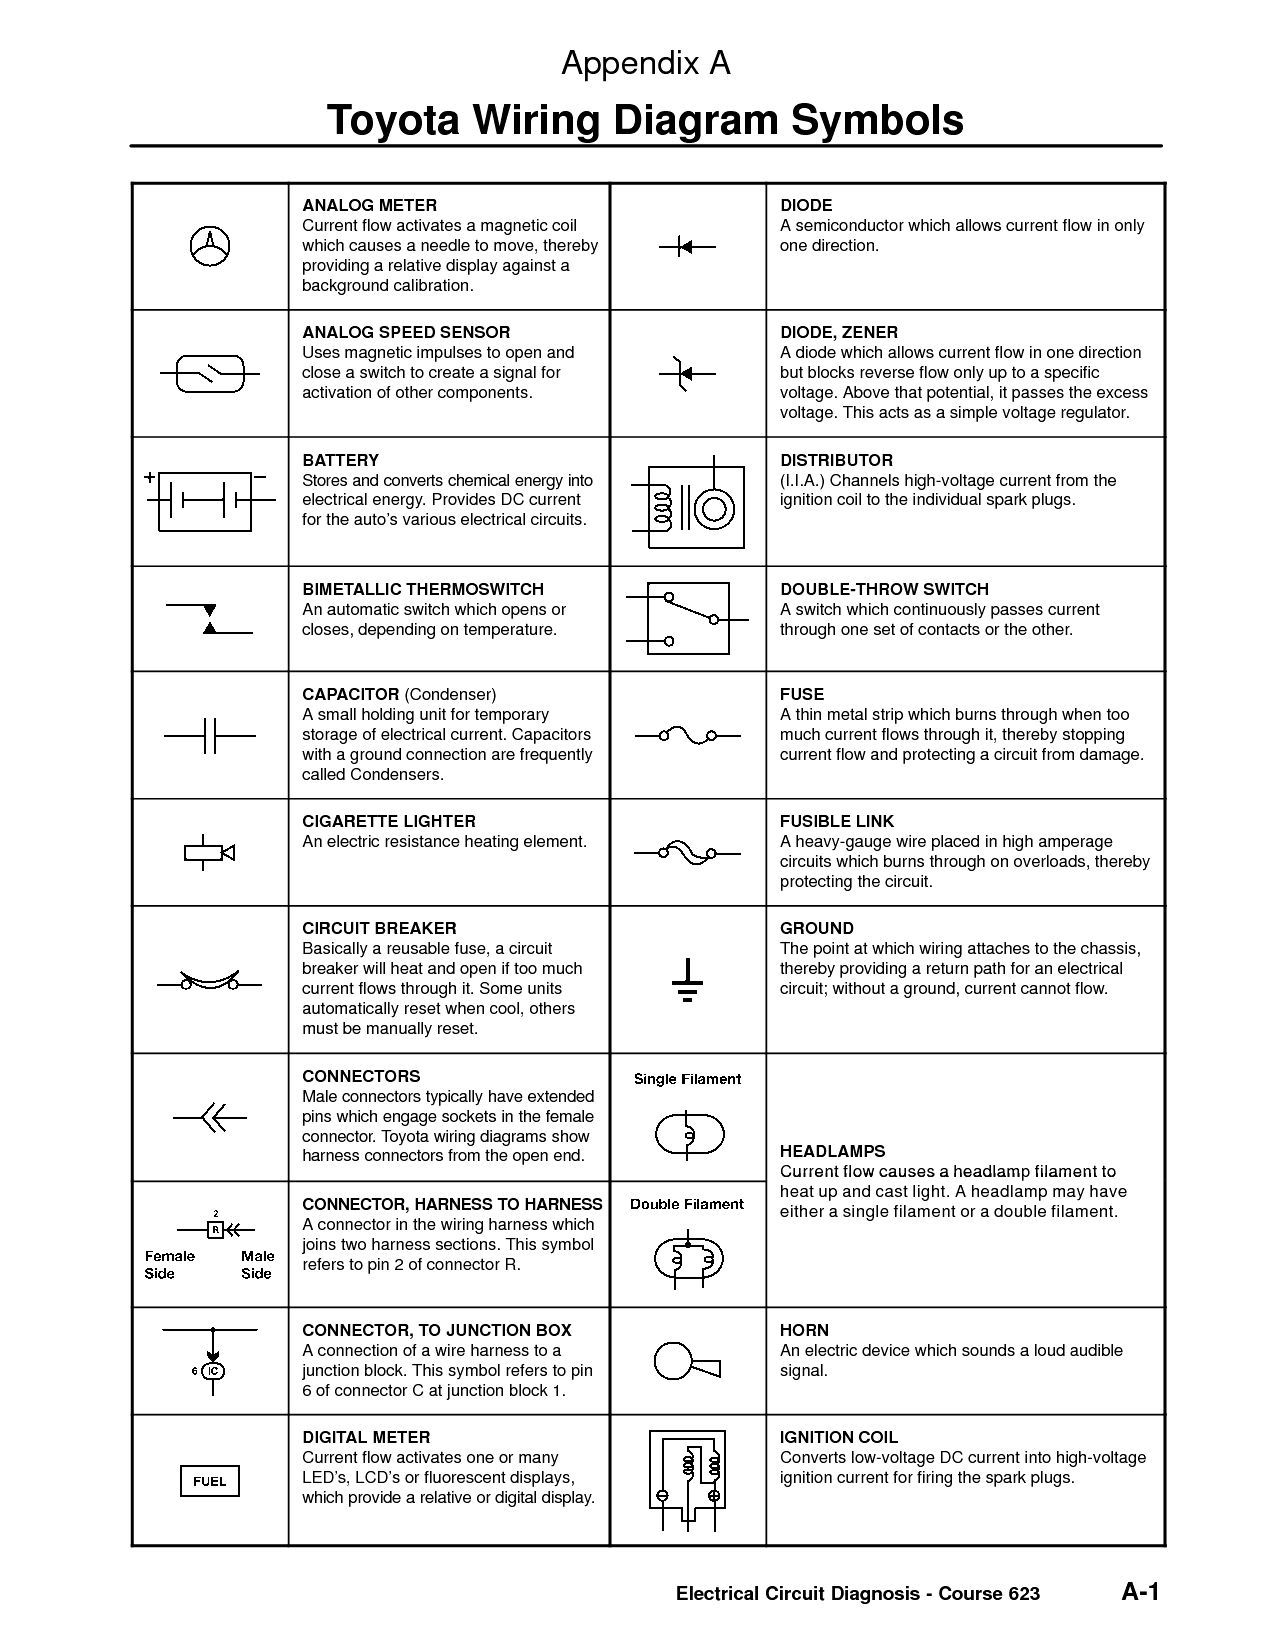 pin by diagram bacamajalah on technical ideas in 2019 electrical industrial electrical wiring diagram symbols [ 1275 x 1650 Pixel ]